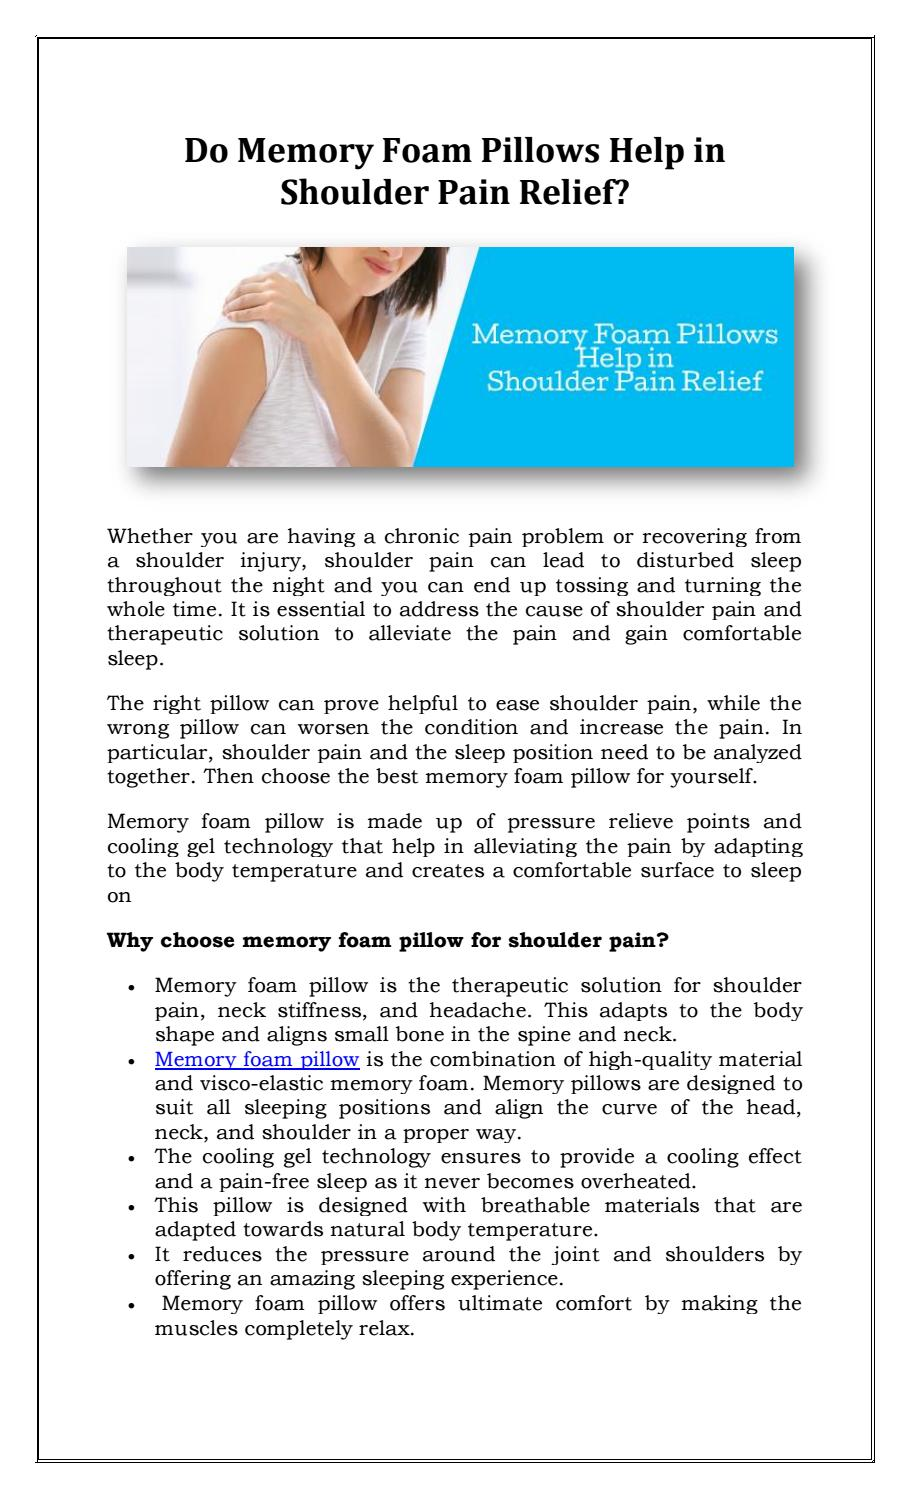 Do Memory Foam Pillows Help In Shoulder Pain Relief By Sleepsia India Pvt Ltd Issuu